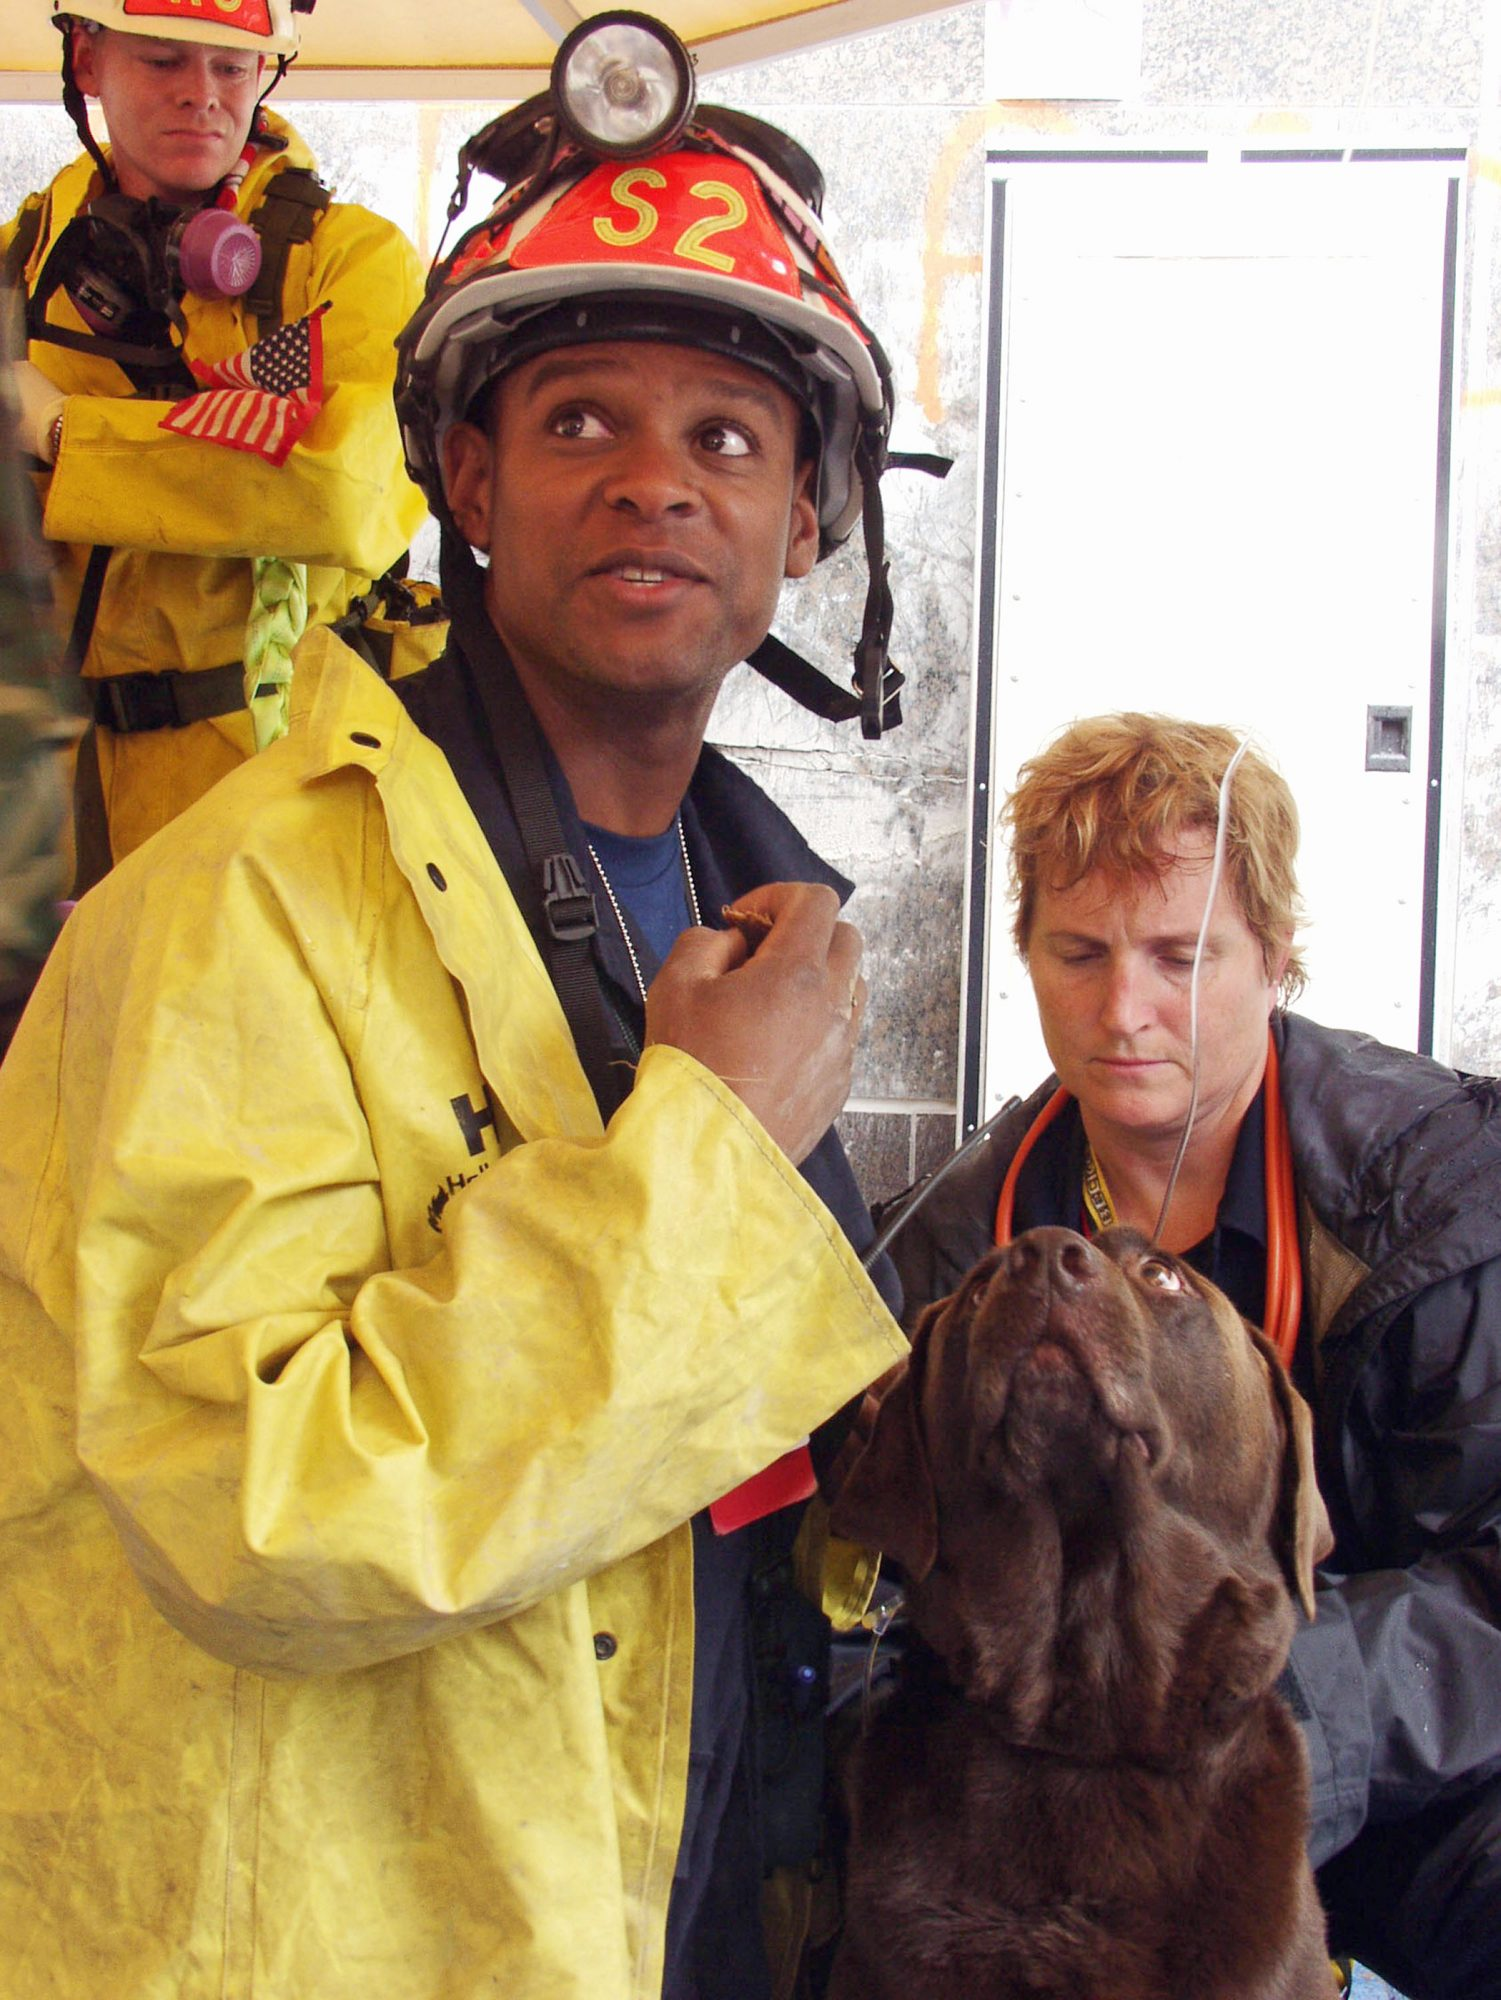 9/11 Dog brown lab sitting next to a FEMA rescuer in a yellow coat